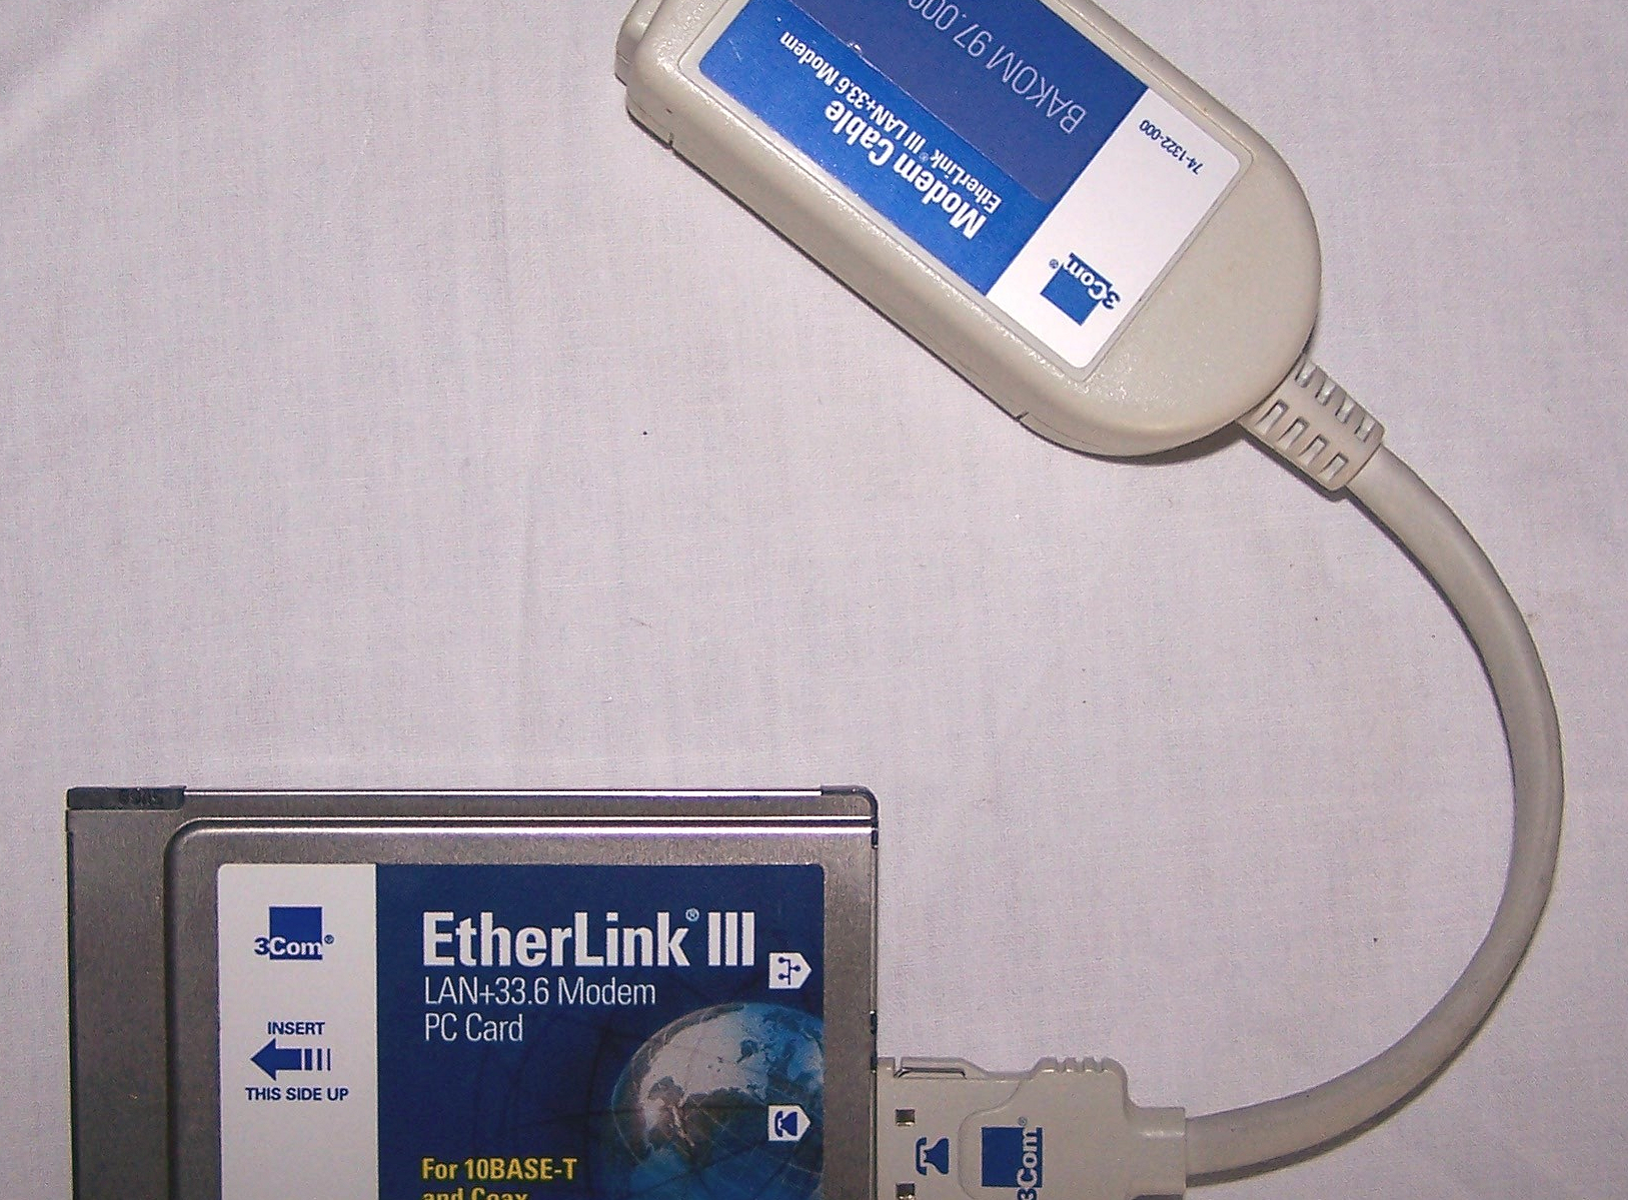 Büro - IT & Kommunikation - 3Com EtherLink III LAN + Modem PC Card